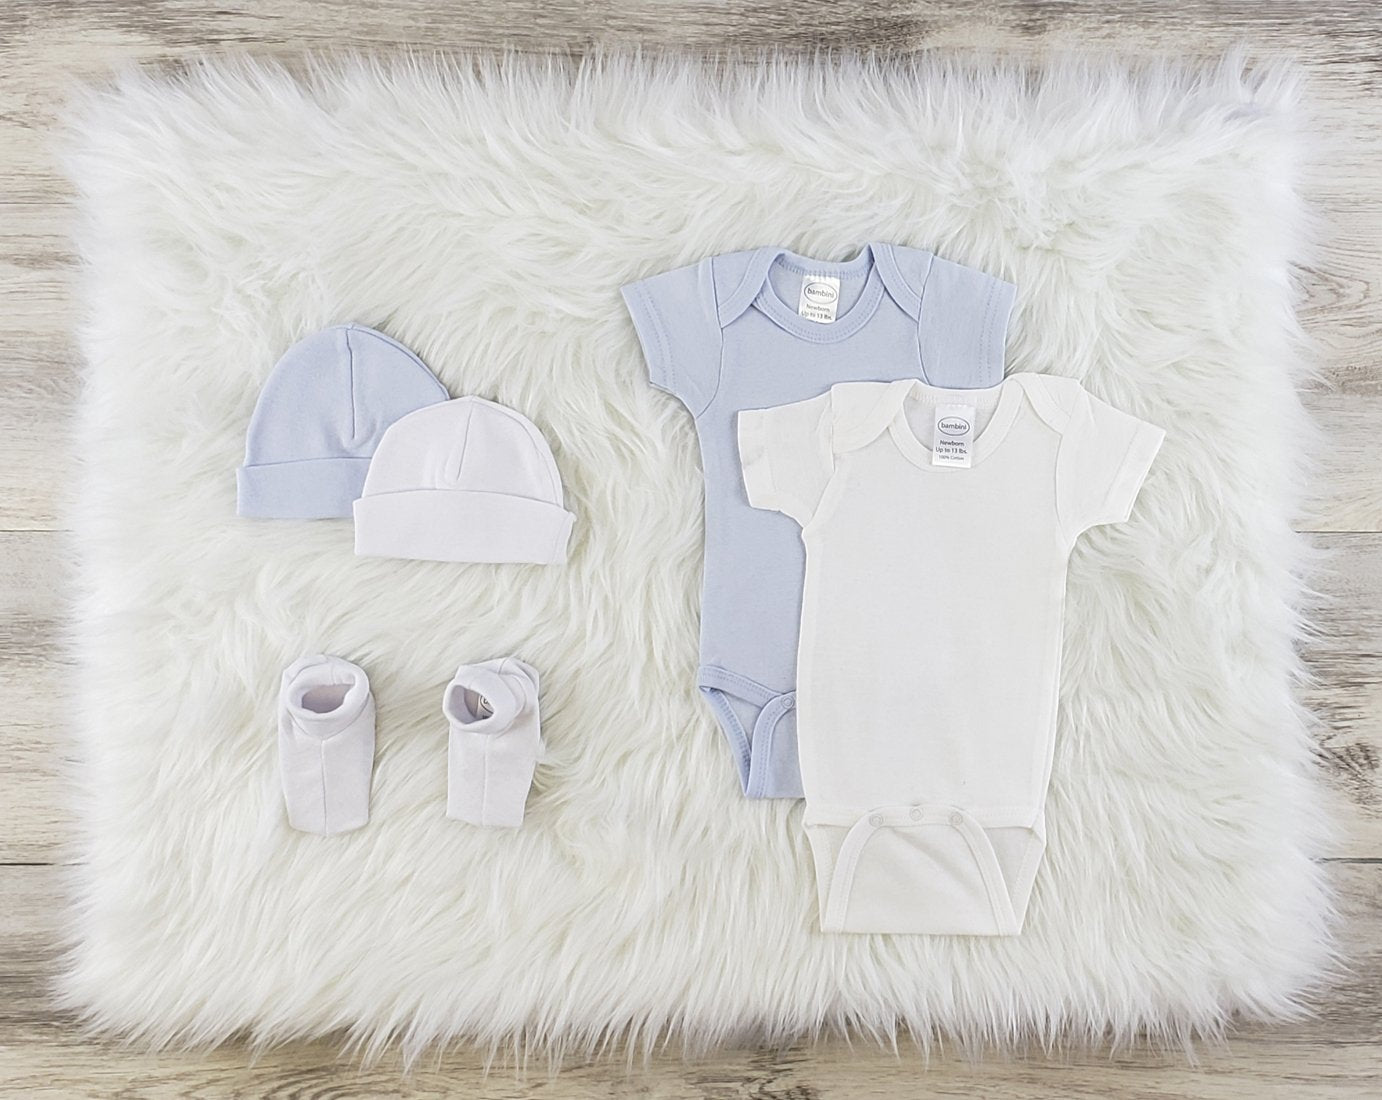 Bambini 5 Pc Layette Baby Clothes Set - Baby World Inc